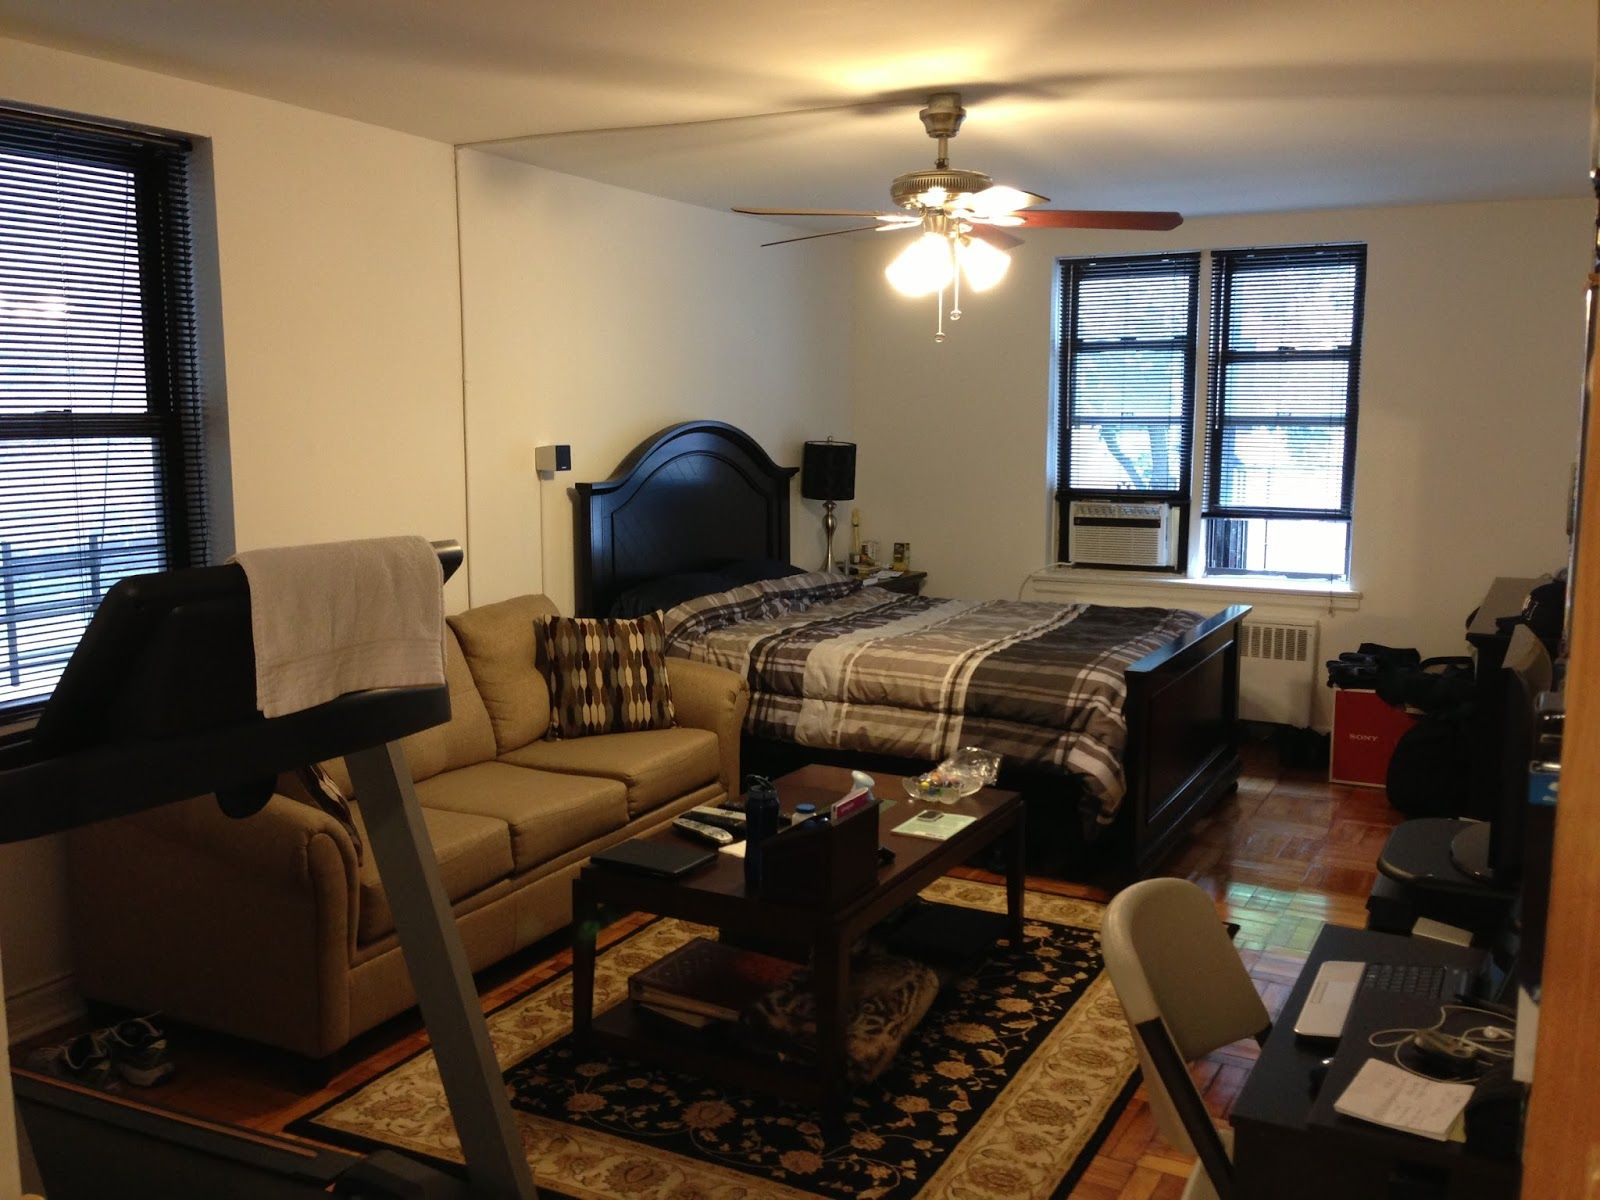 Bedroom layout ideas for small rooms couch google search - Couch for studio apartment ...